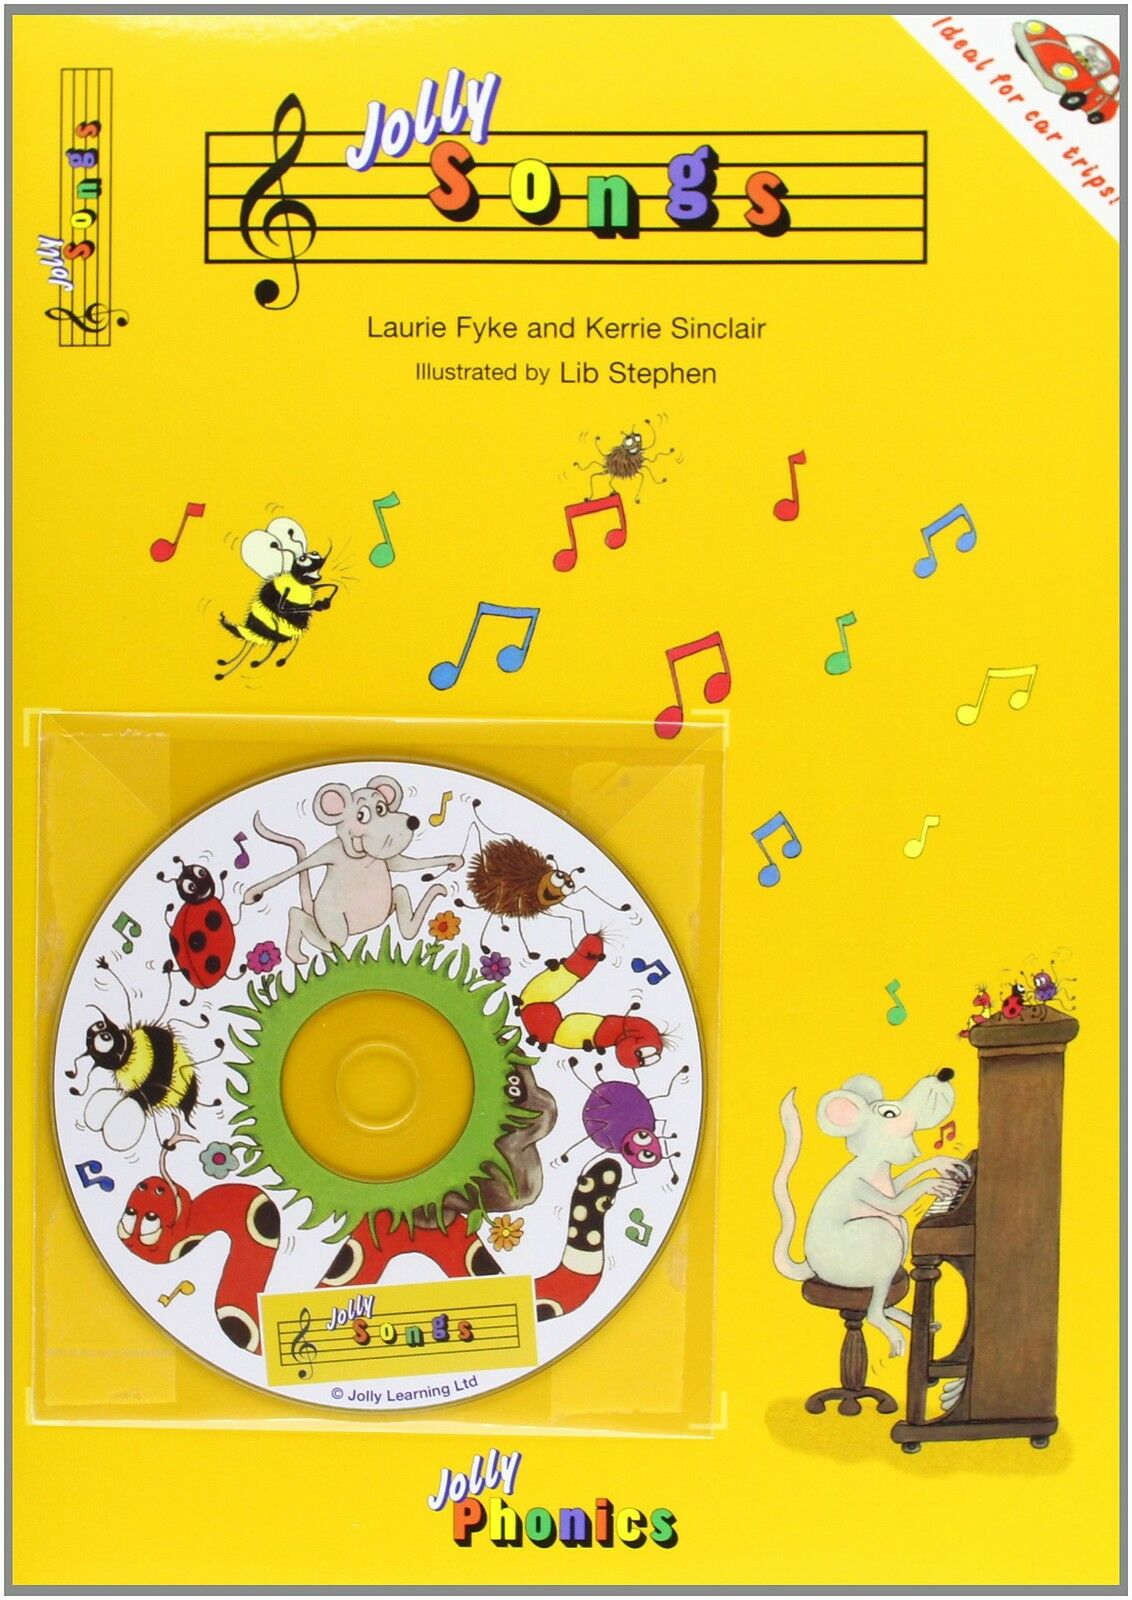 Jolly Songs (Jolly Phonics) (BOOK & CD)BRAND NEW FREE FAST  DELIVERY